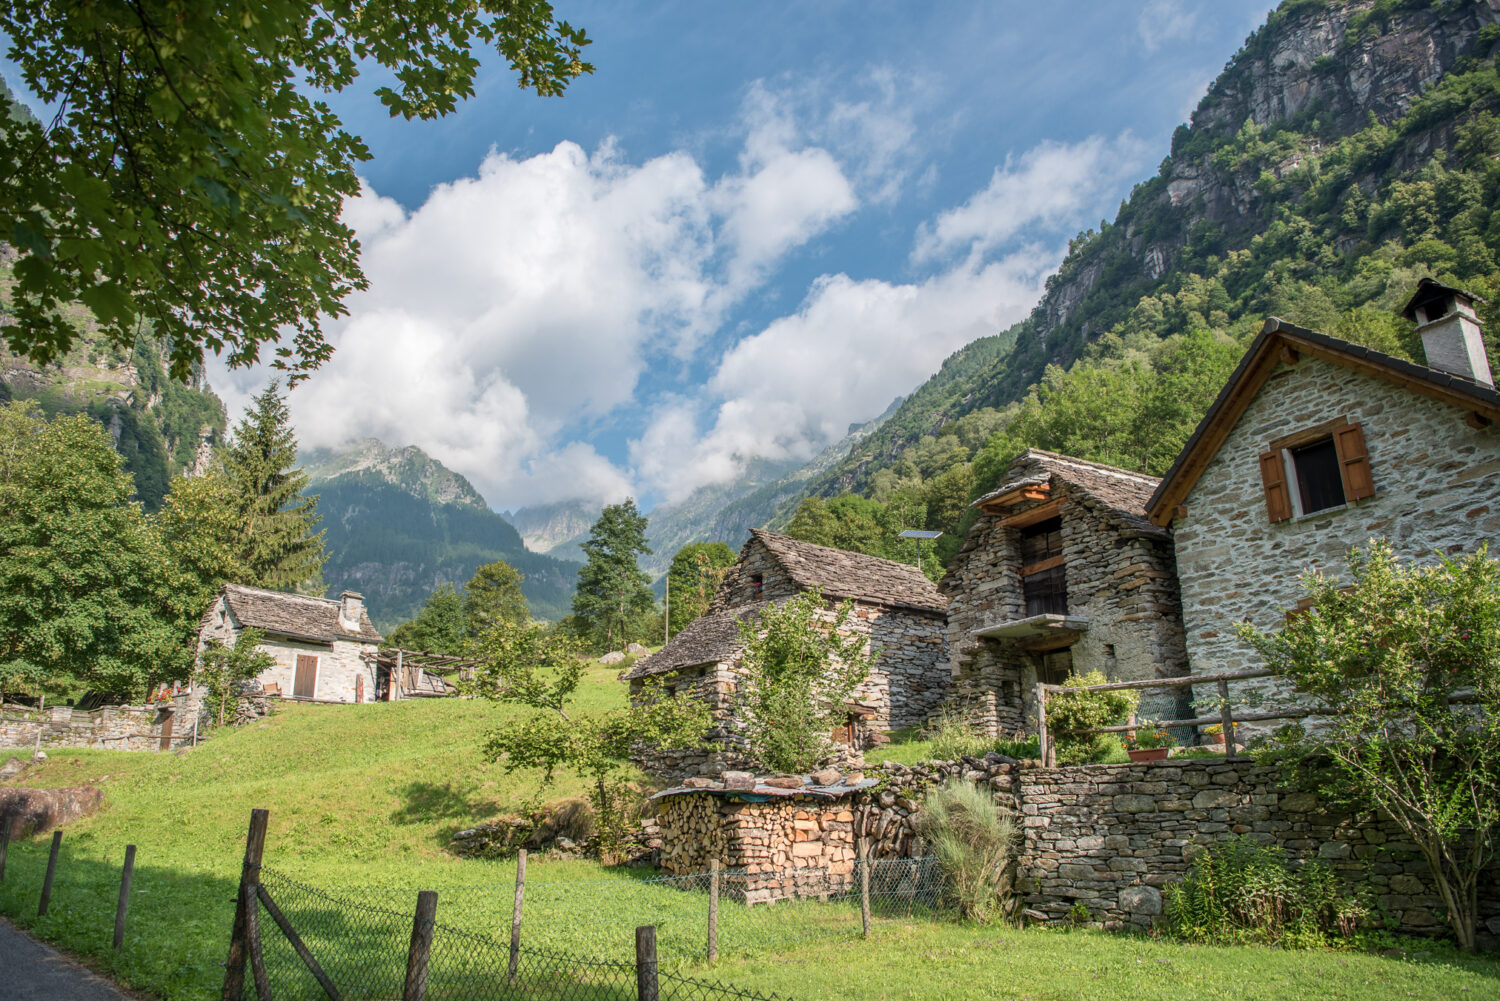 Alpen, Alps, Europa, Kanton Tessin, Pick, Schweiz, Südostschweiz, Ticino, Verzasca Tal, _THEMES, architecture, architektur, berge, buildings, gebäude, haus, house, landscape, landschaft, mountains, on the way, reise, rustico, steinhaus, stone house, travel, unterwegs